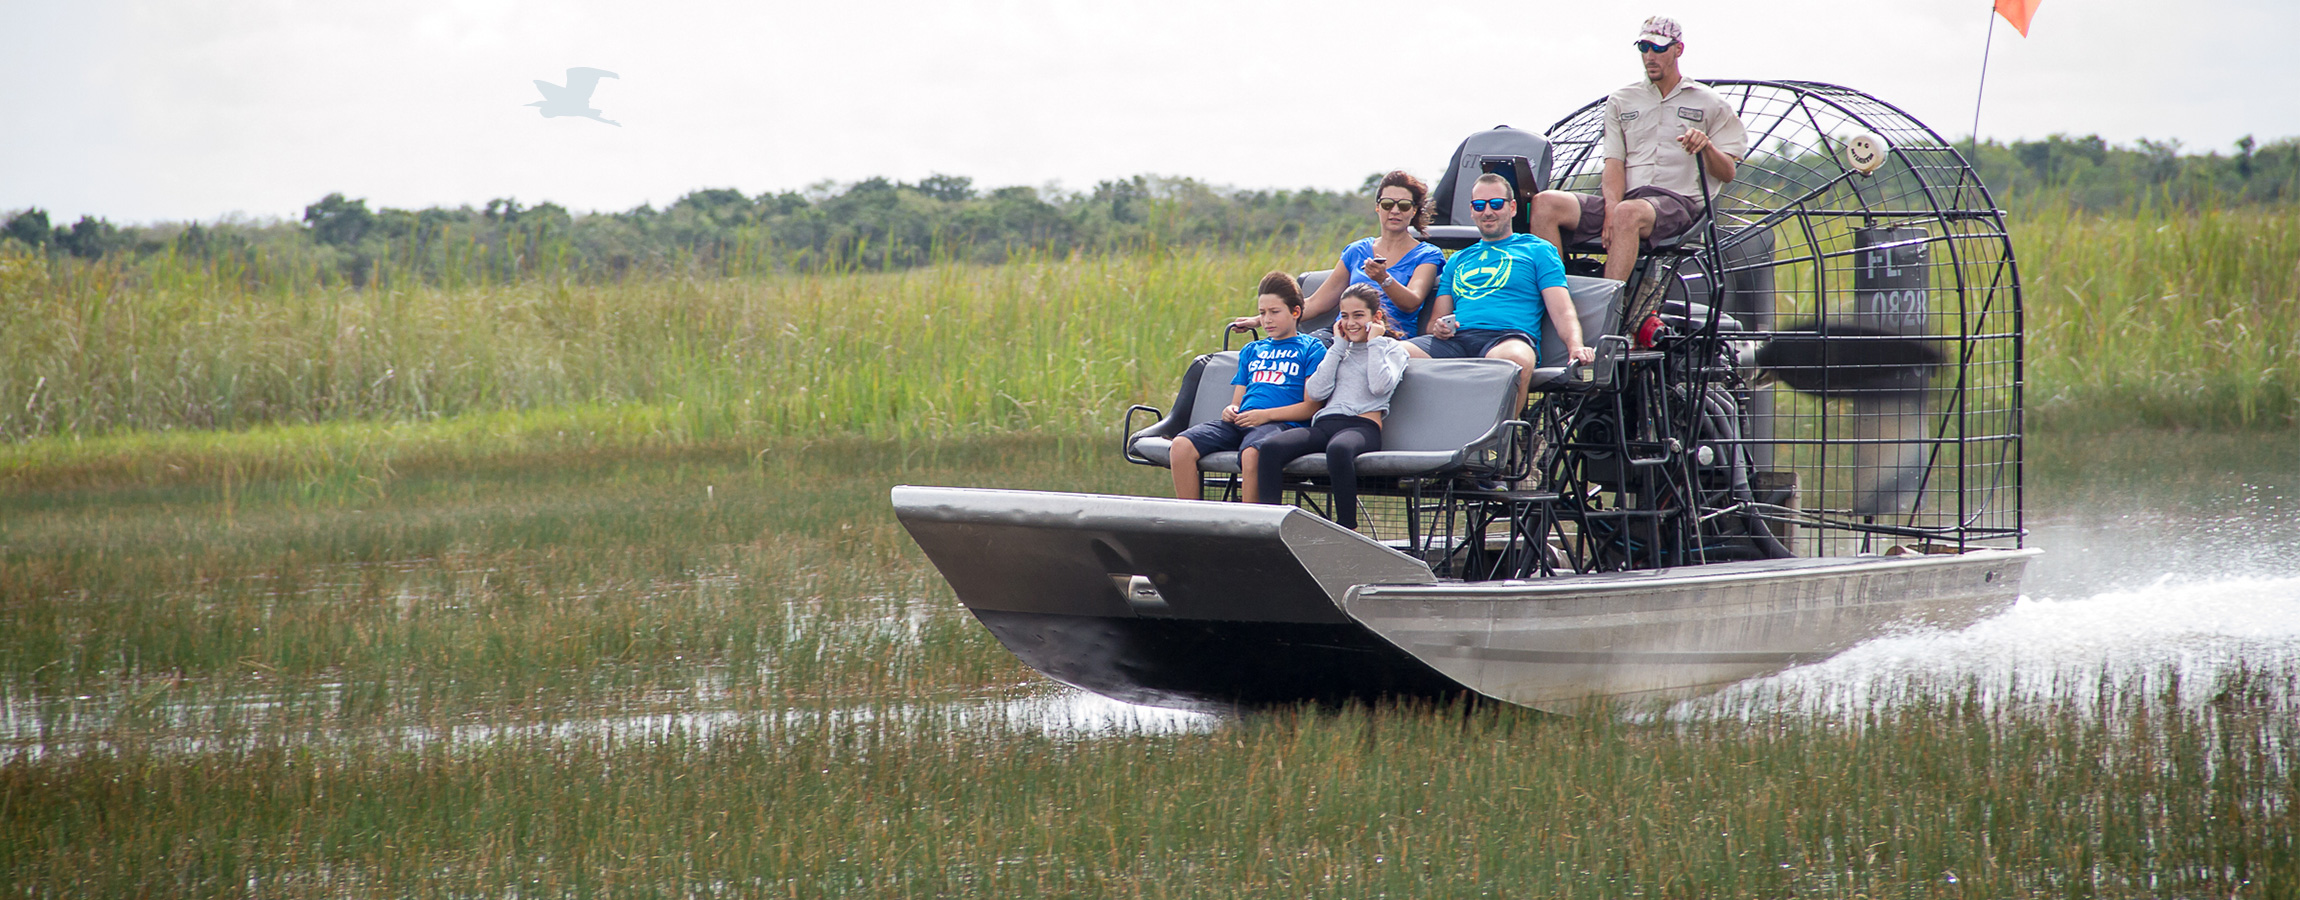 Florida Airboat Rides At Gator Park Everglades Tours National Miami